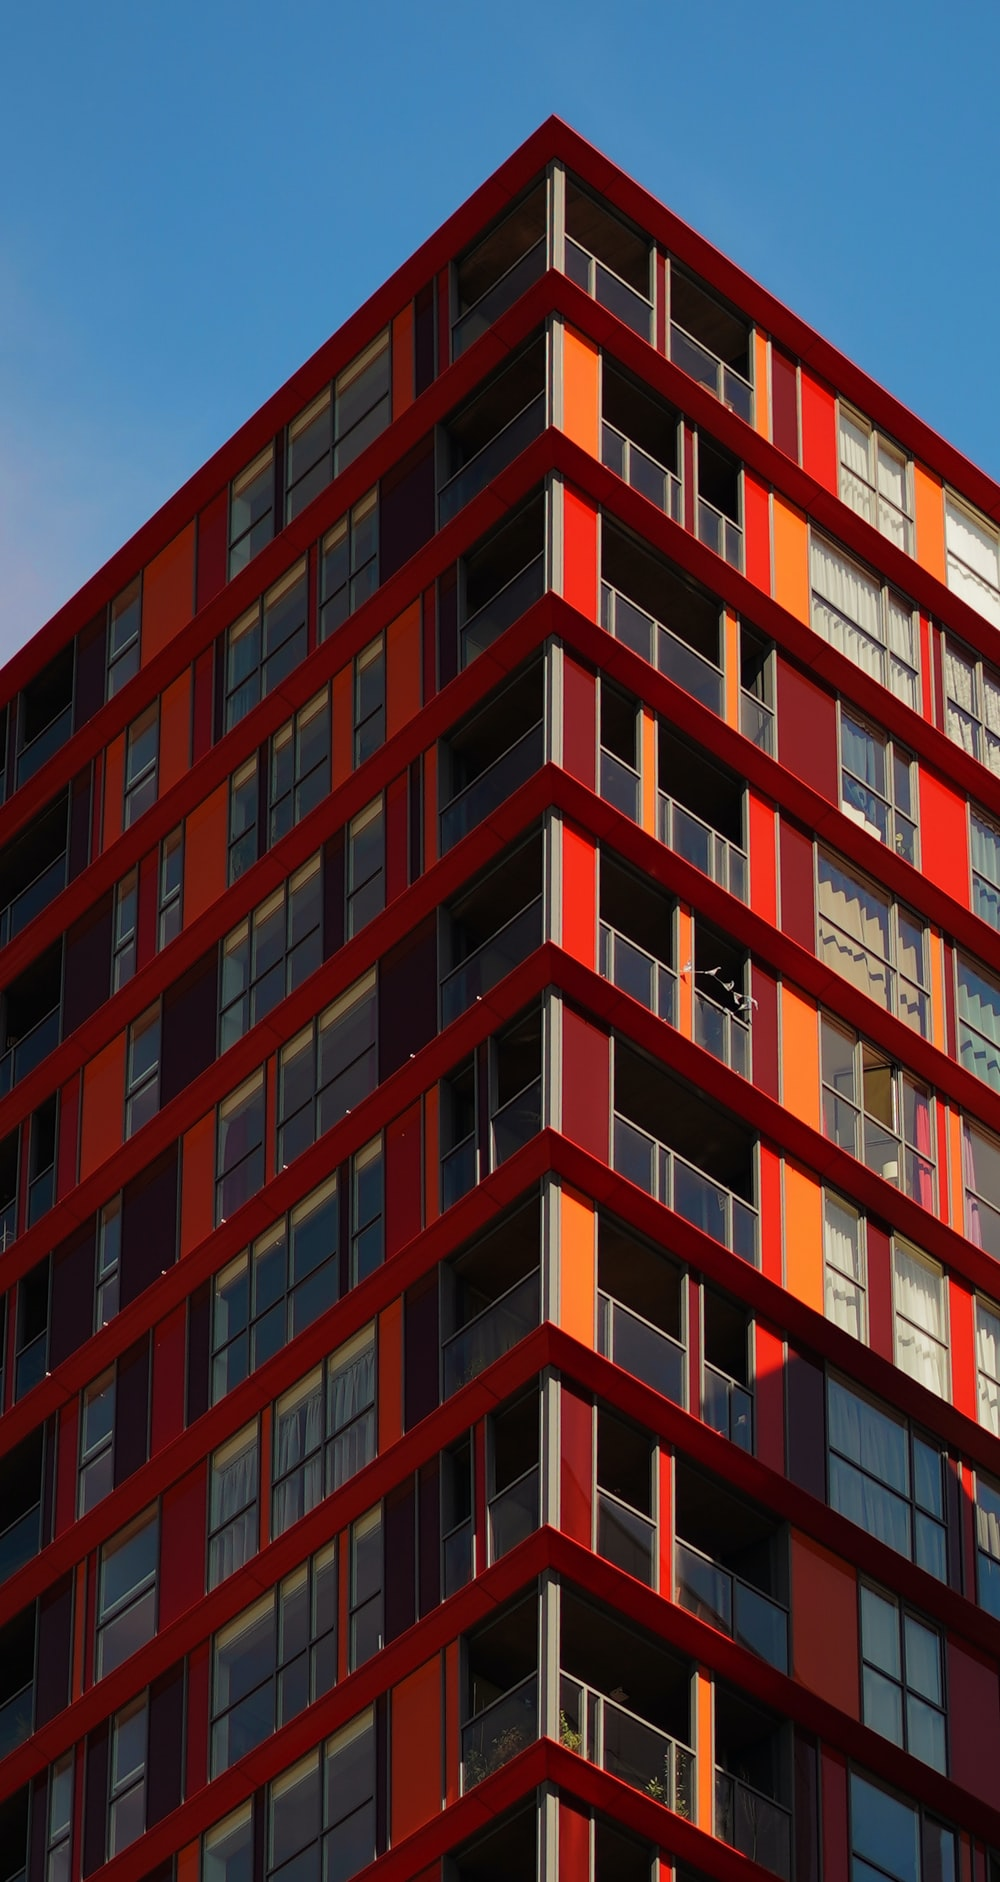 red and black building